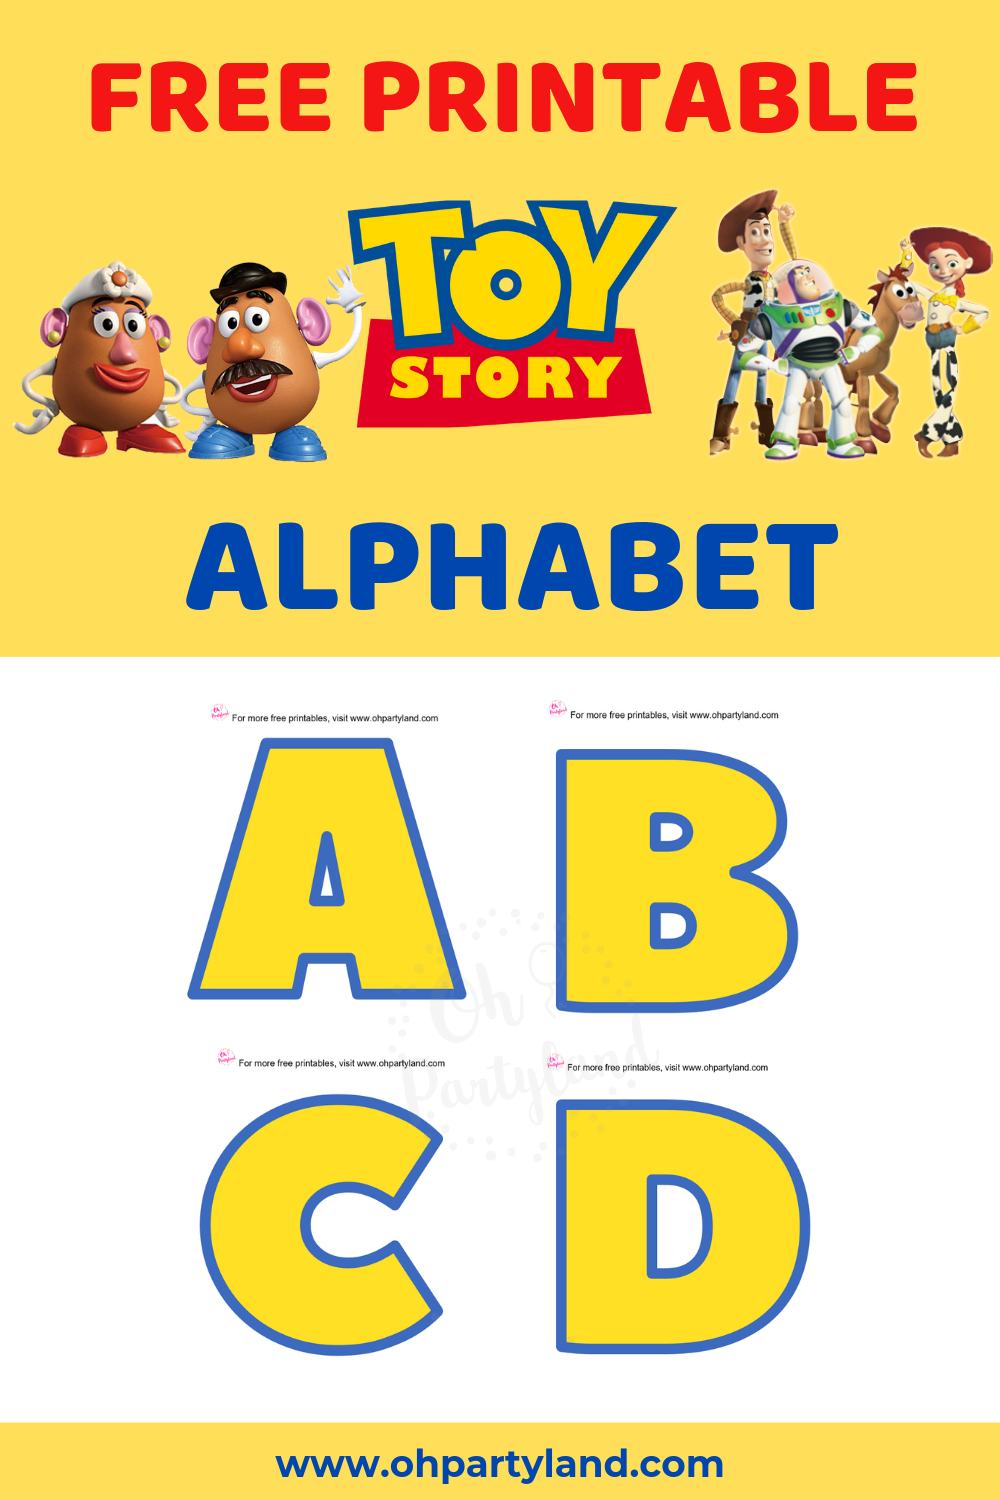 free-printable-toy-story-alphabet